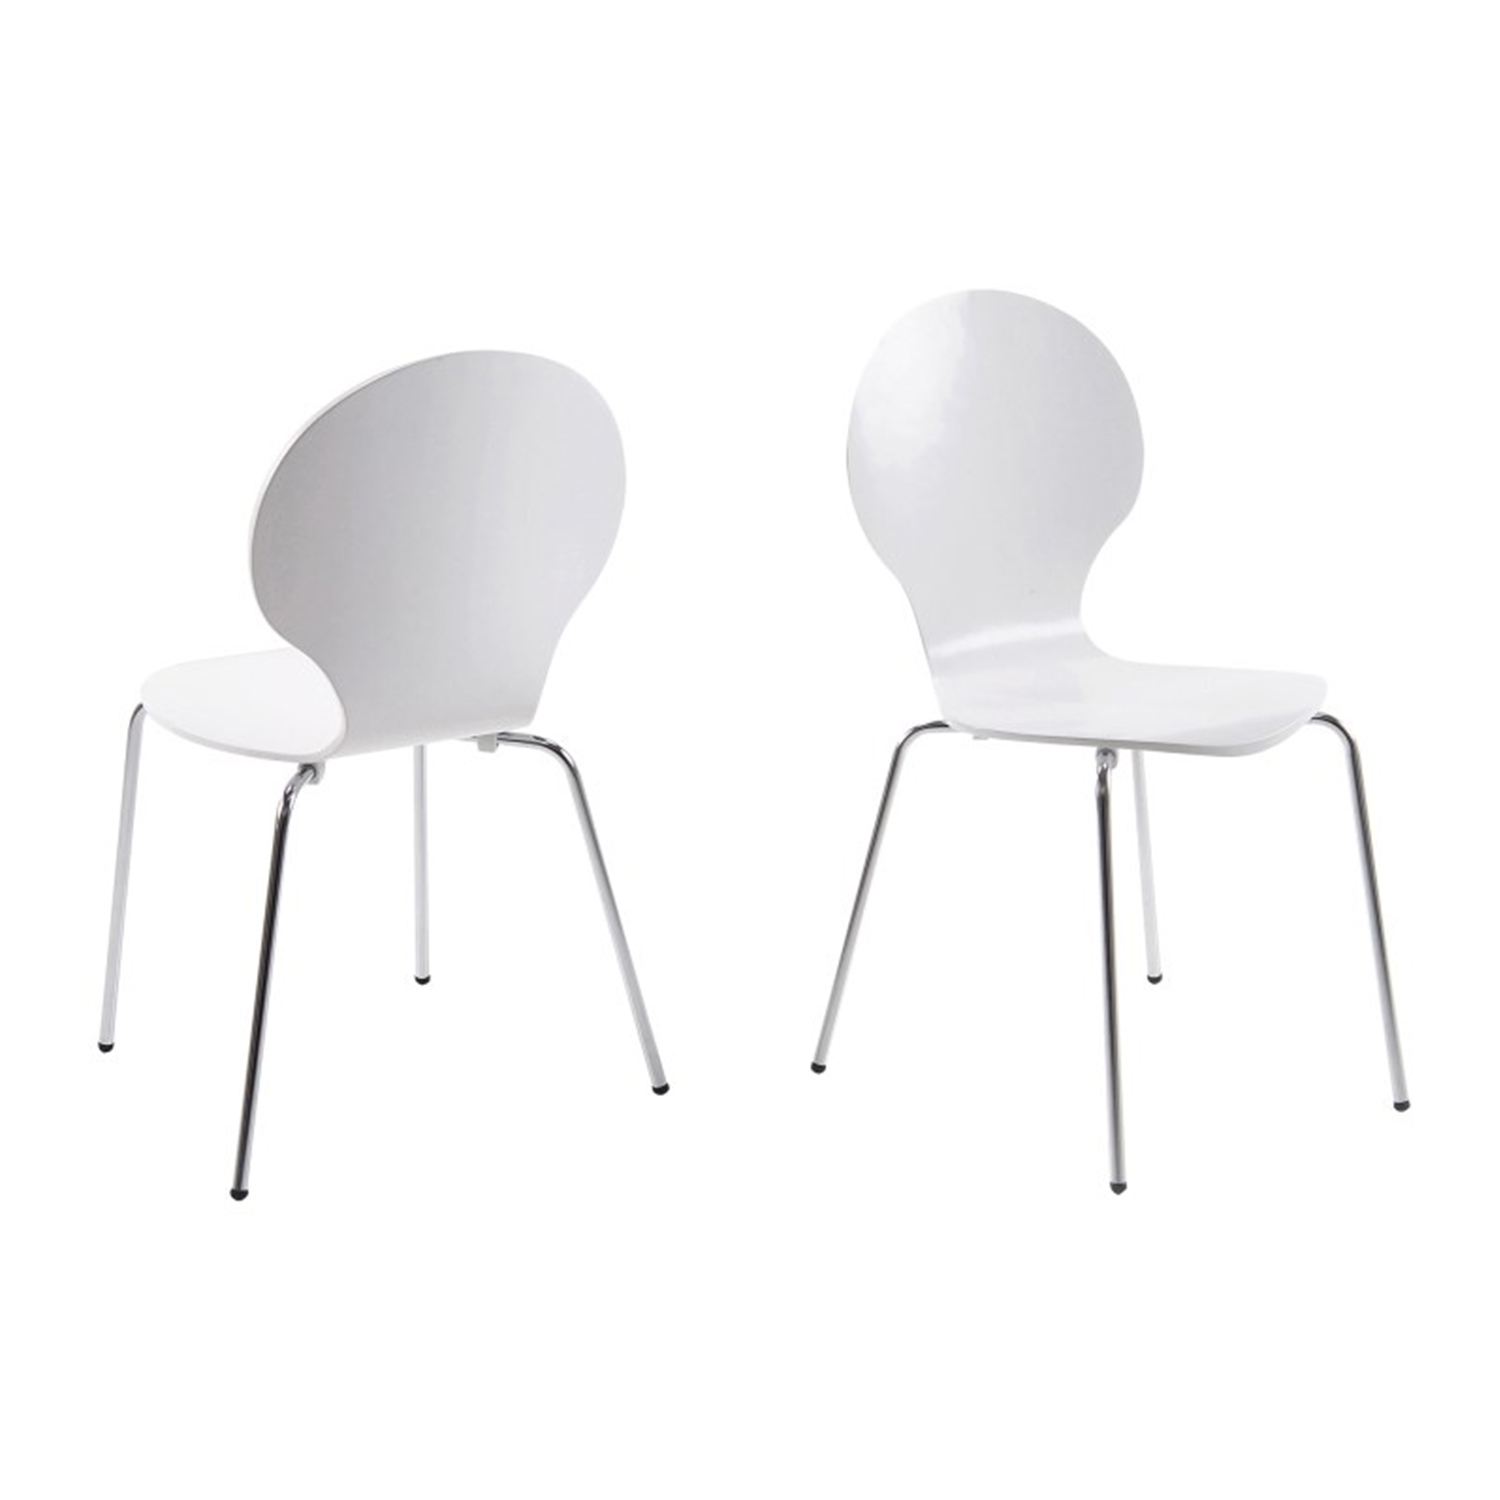 Hugo Molded Ply Dining Chair Set Of 4 6 8 Fads